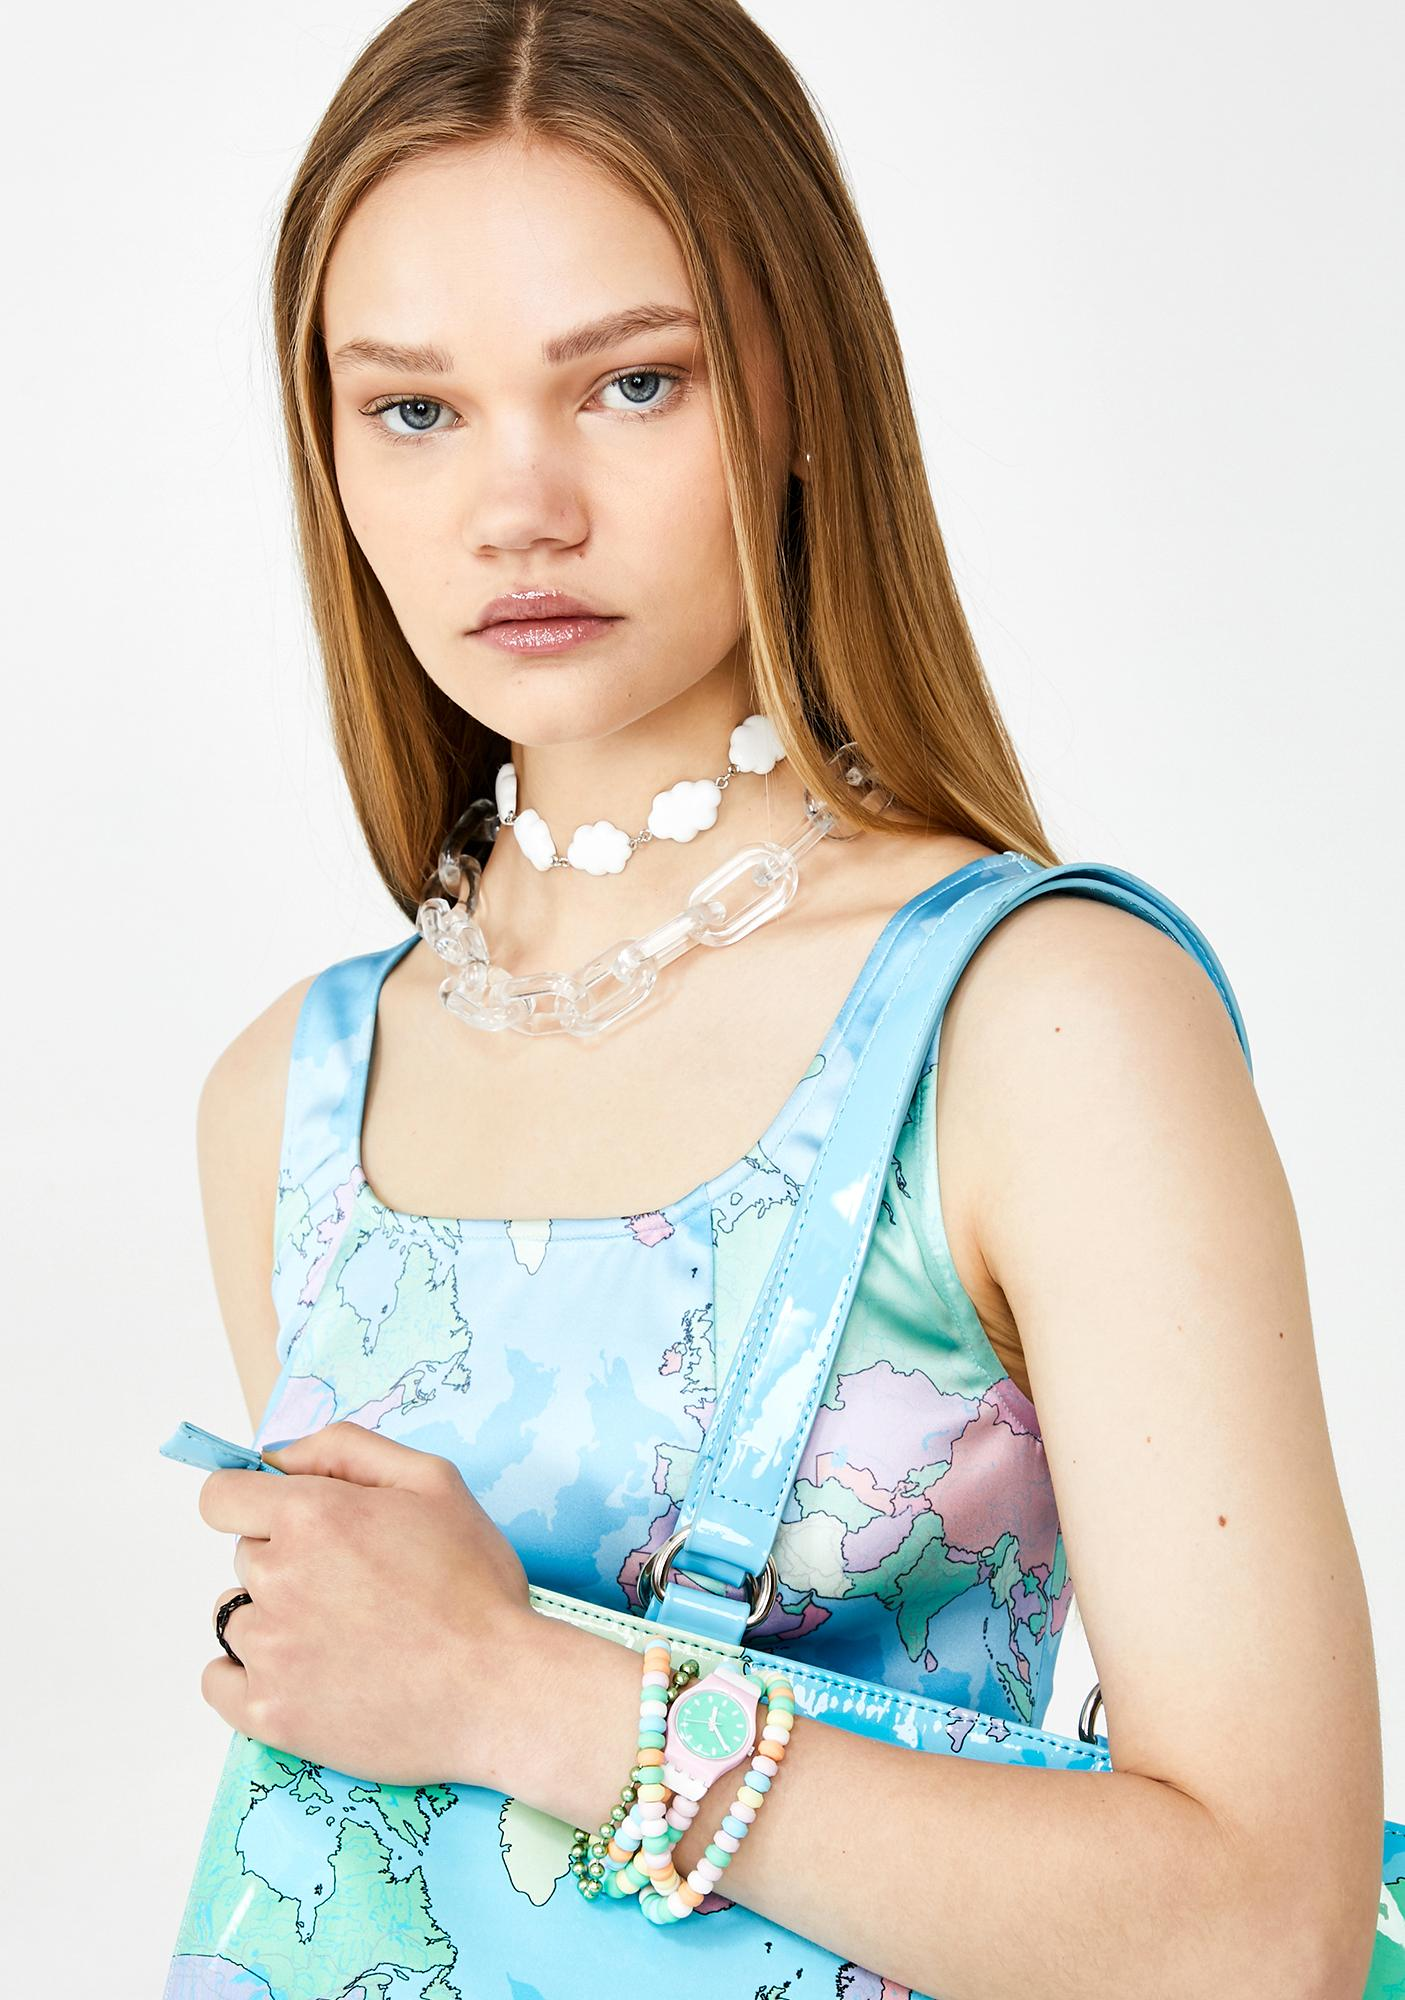 Clearly Sprung Chain Necklace